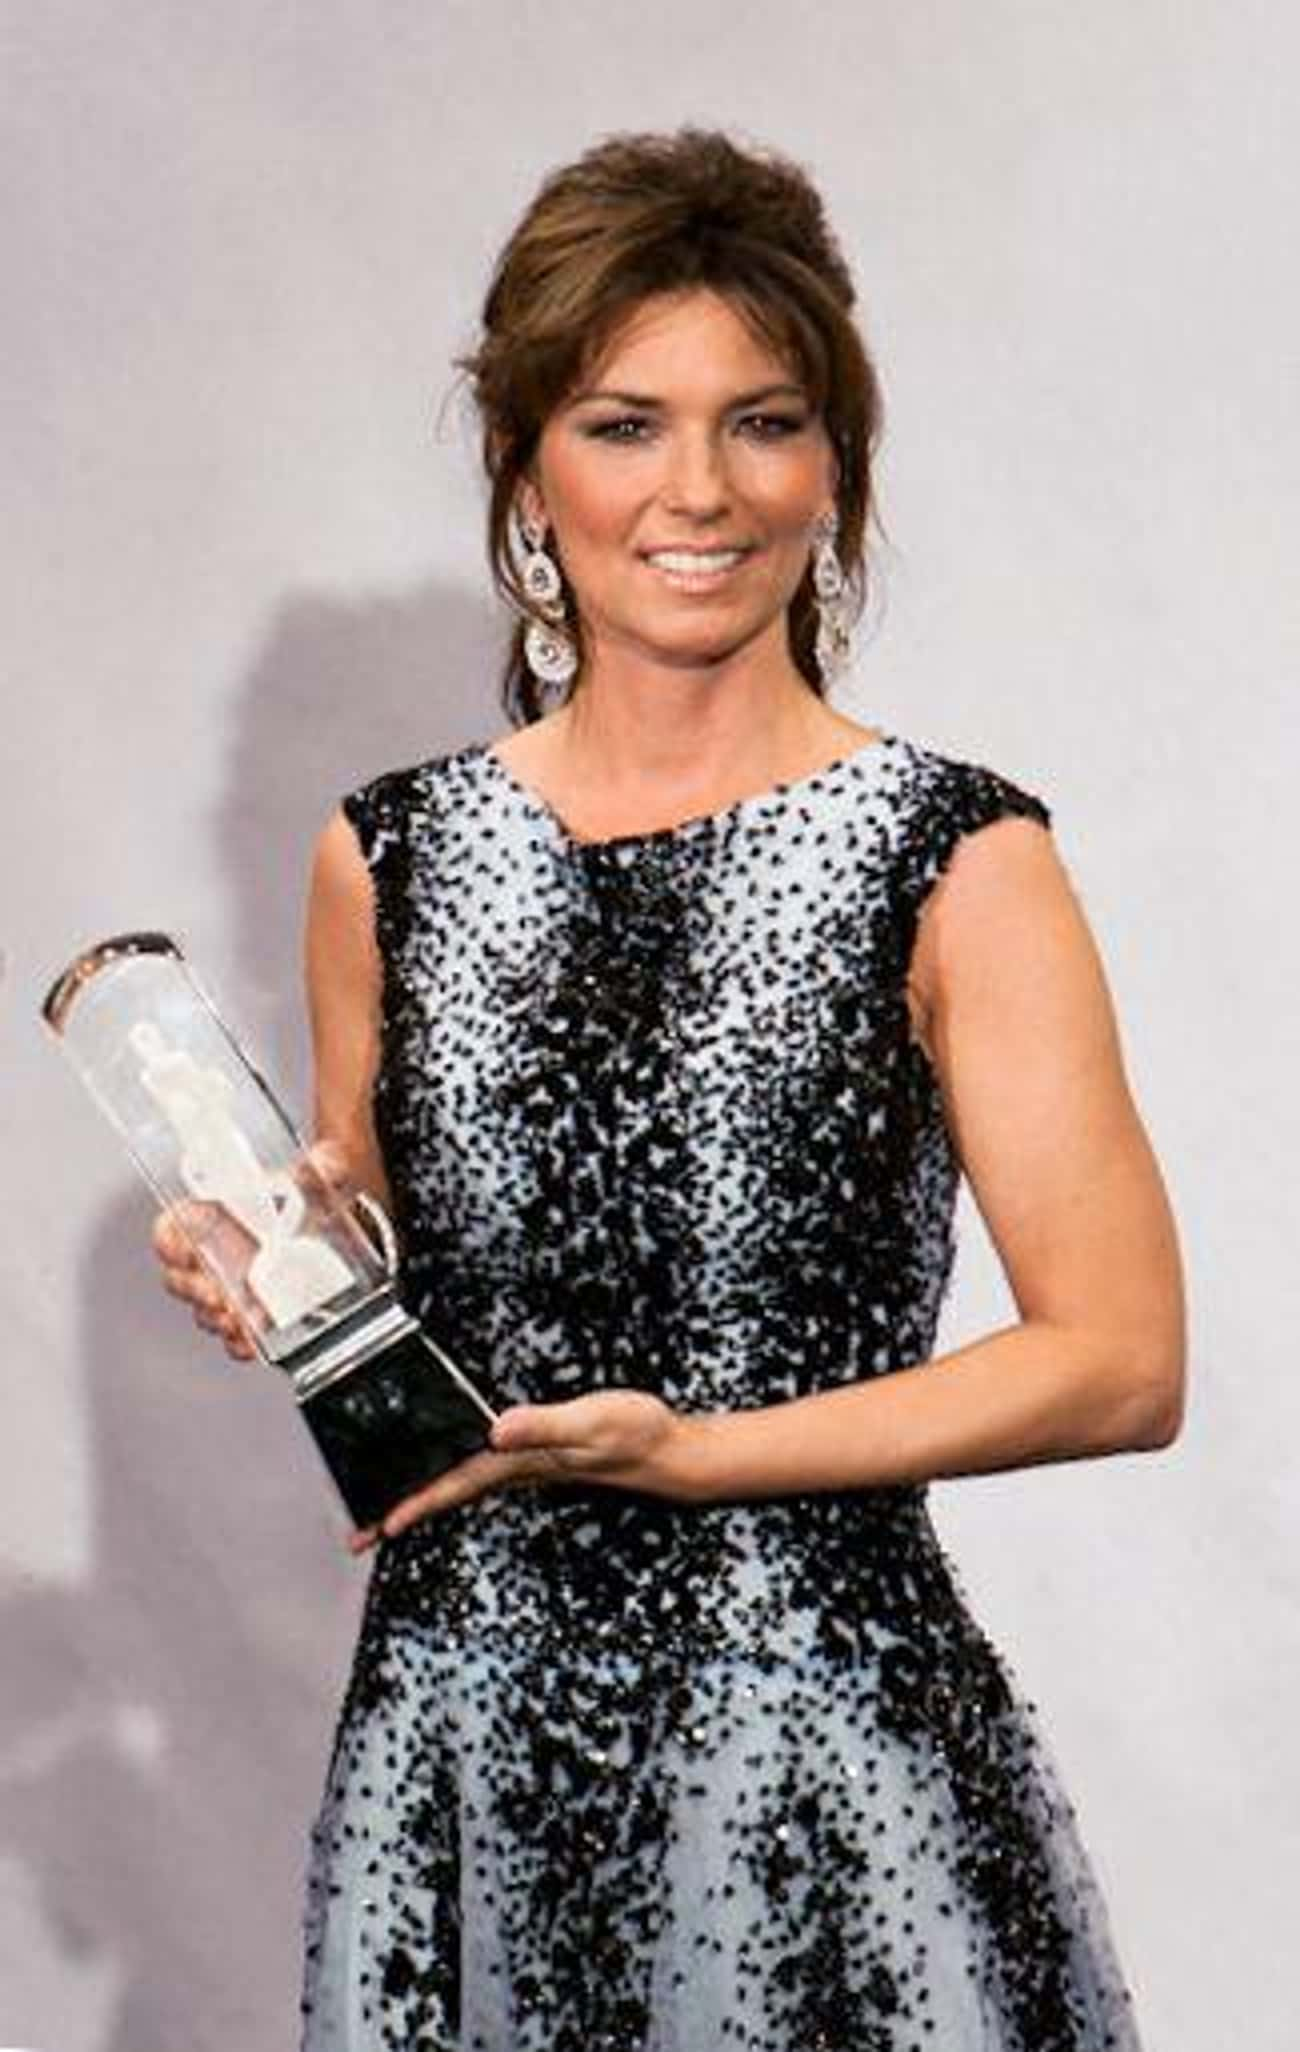 Shania Twain is listed (or ranked) 3 on the list 50+ Famous Singers Who Are Virgos